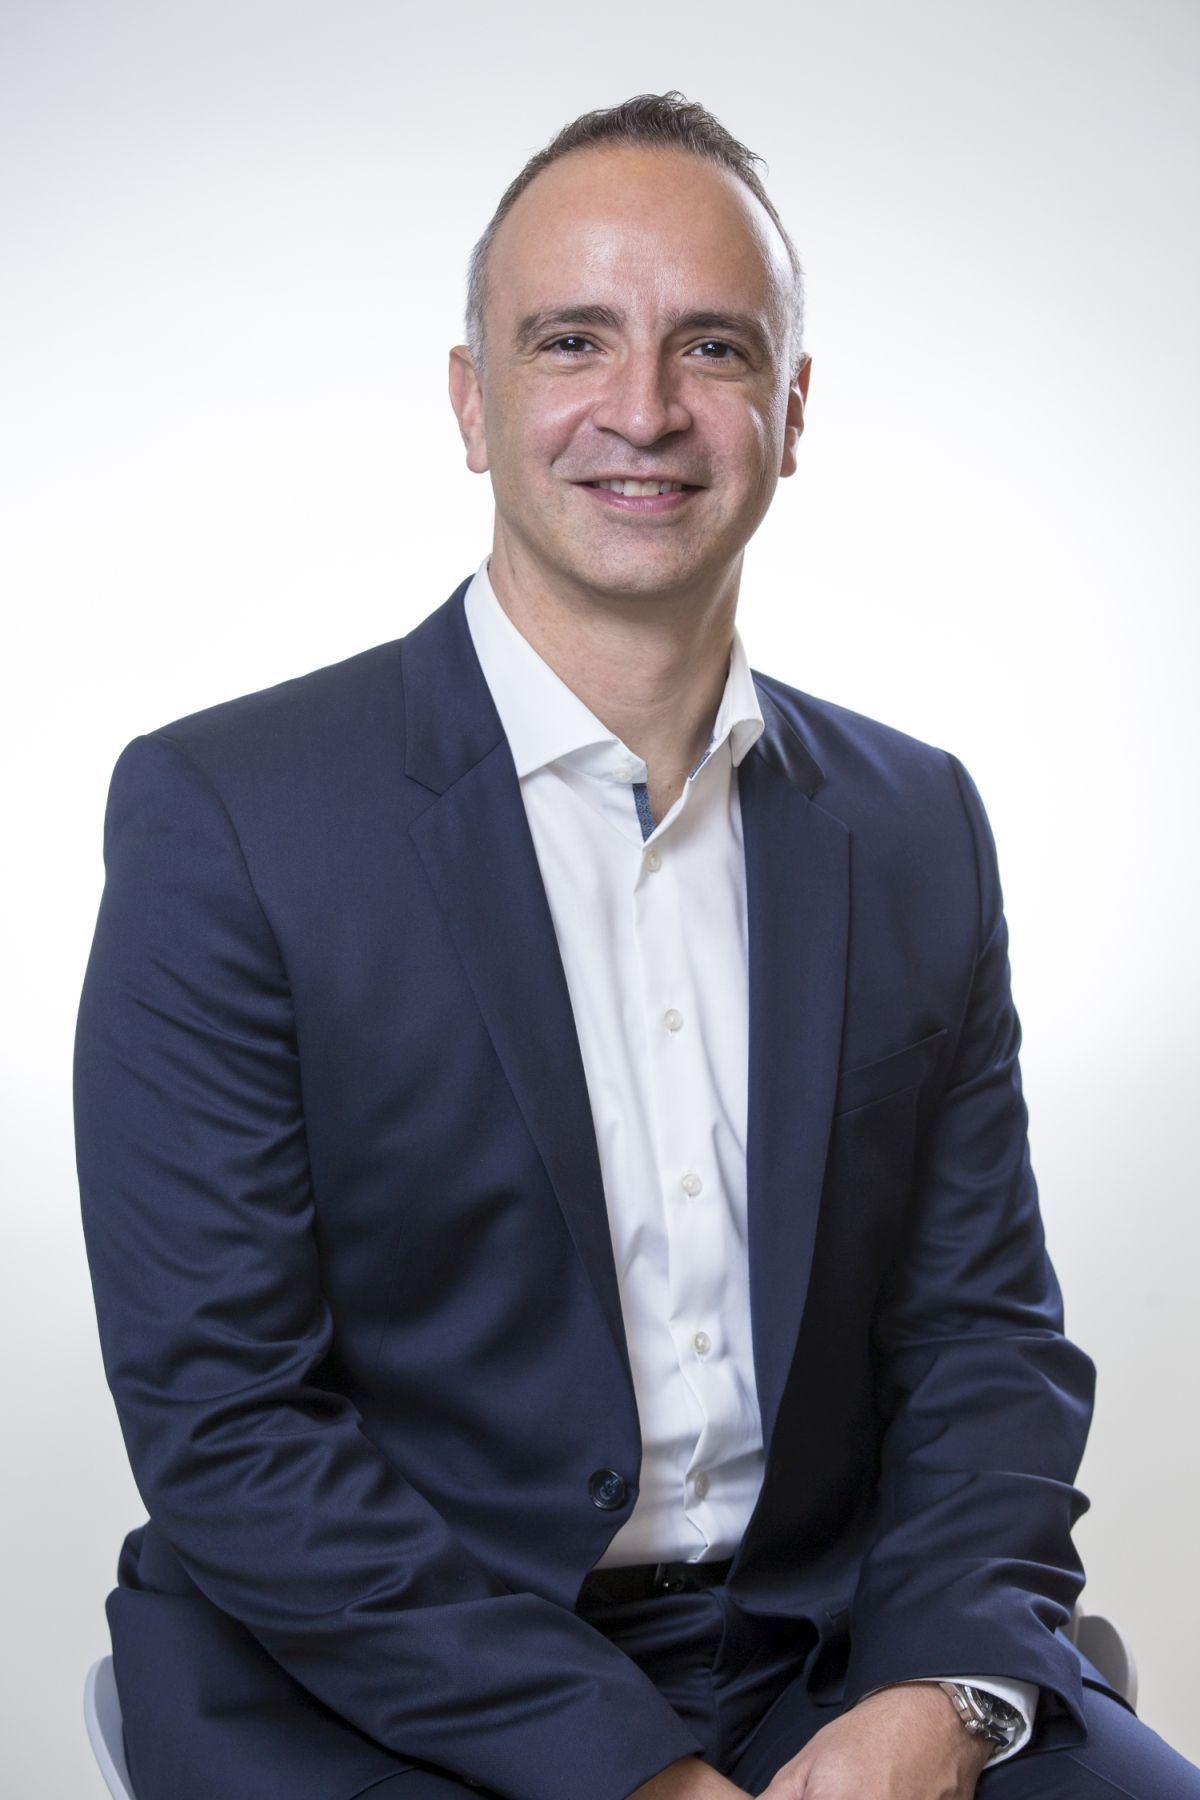 'The Code4Life Inter-University IT Virtual Hackathon will provide our emerging tech talents with an opportunity to work alongside Roche mentors from diverse IT backgrounds,' said RSS APAC general manager Martin Kikstein.